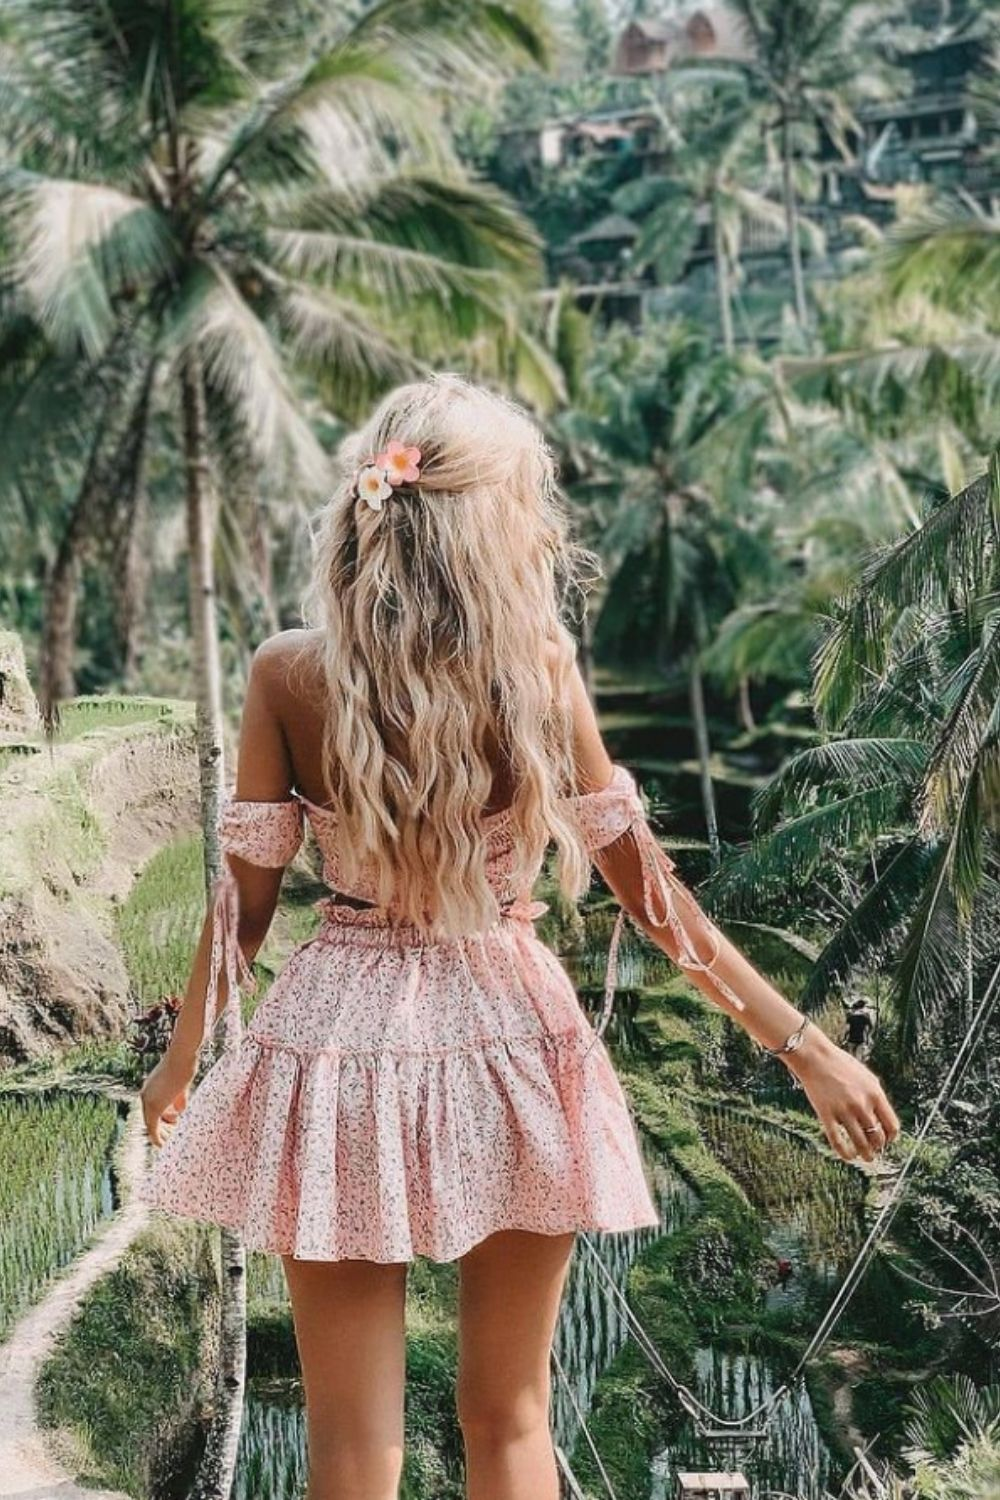 How to do cute summer hairstyle 2021?